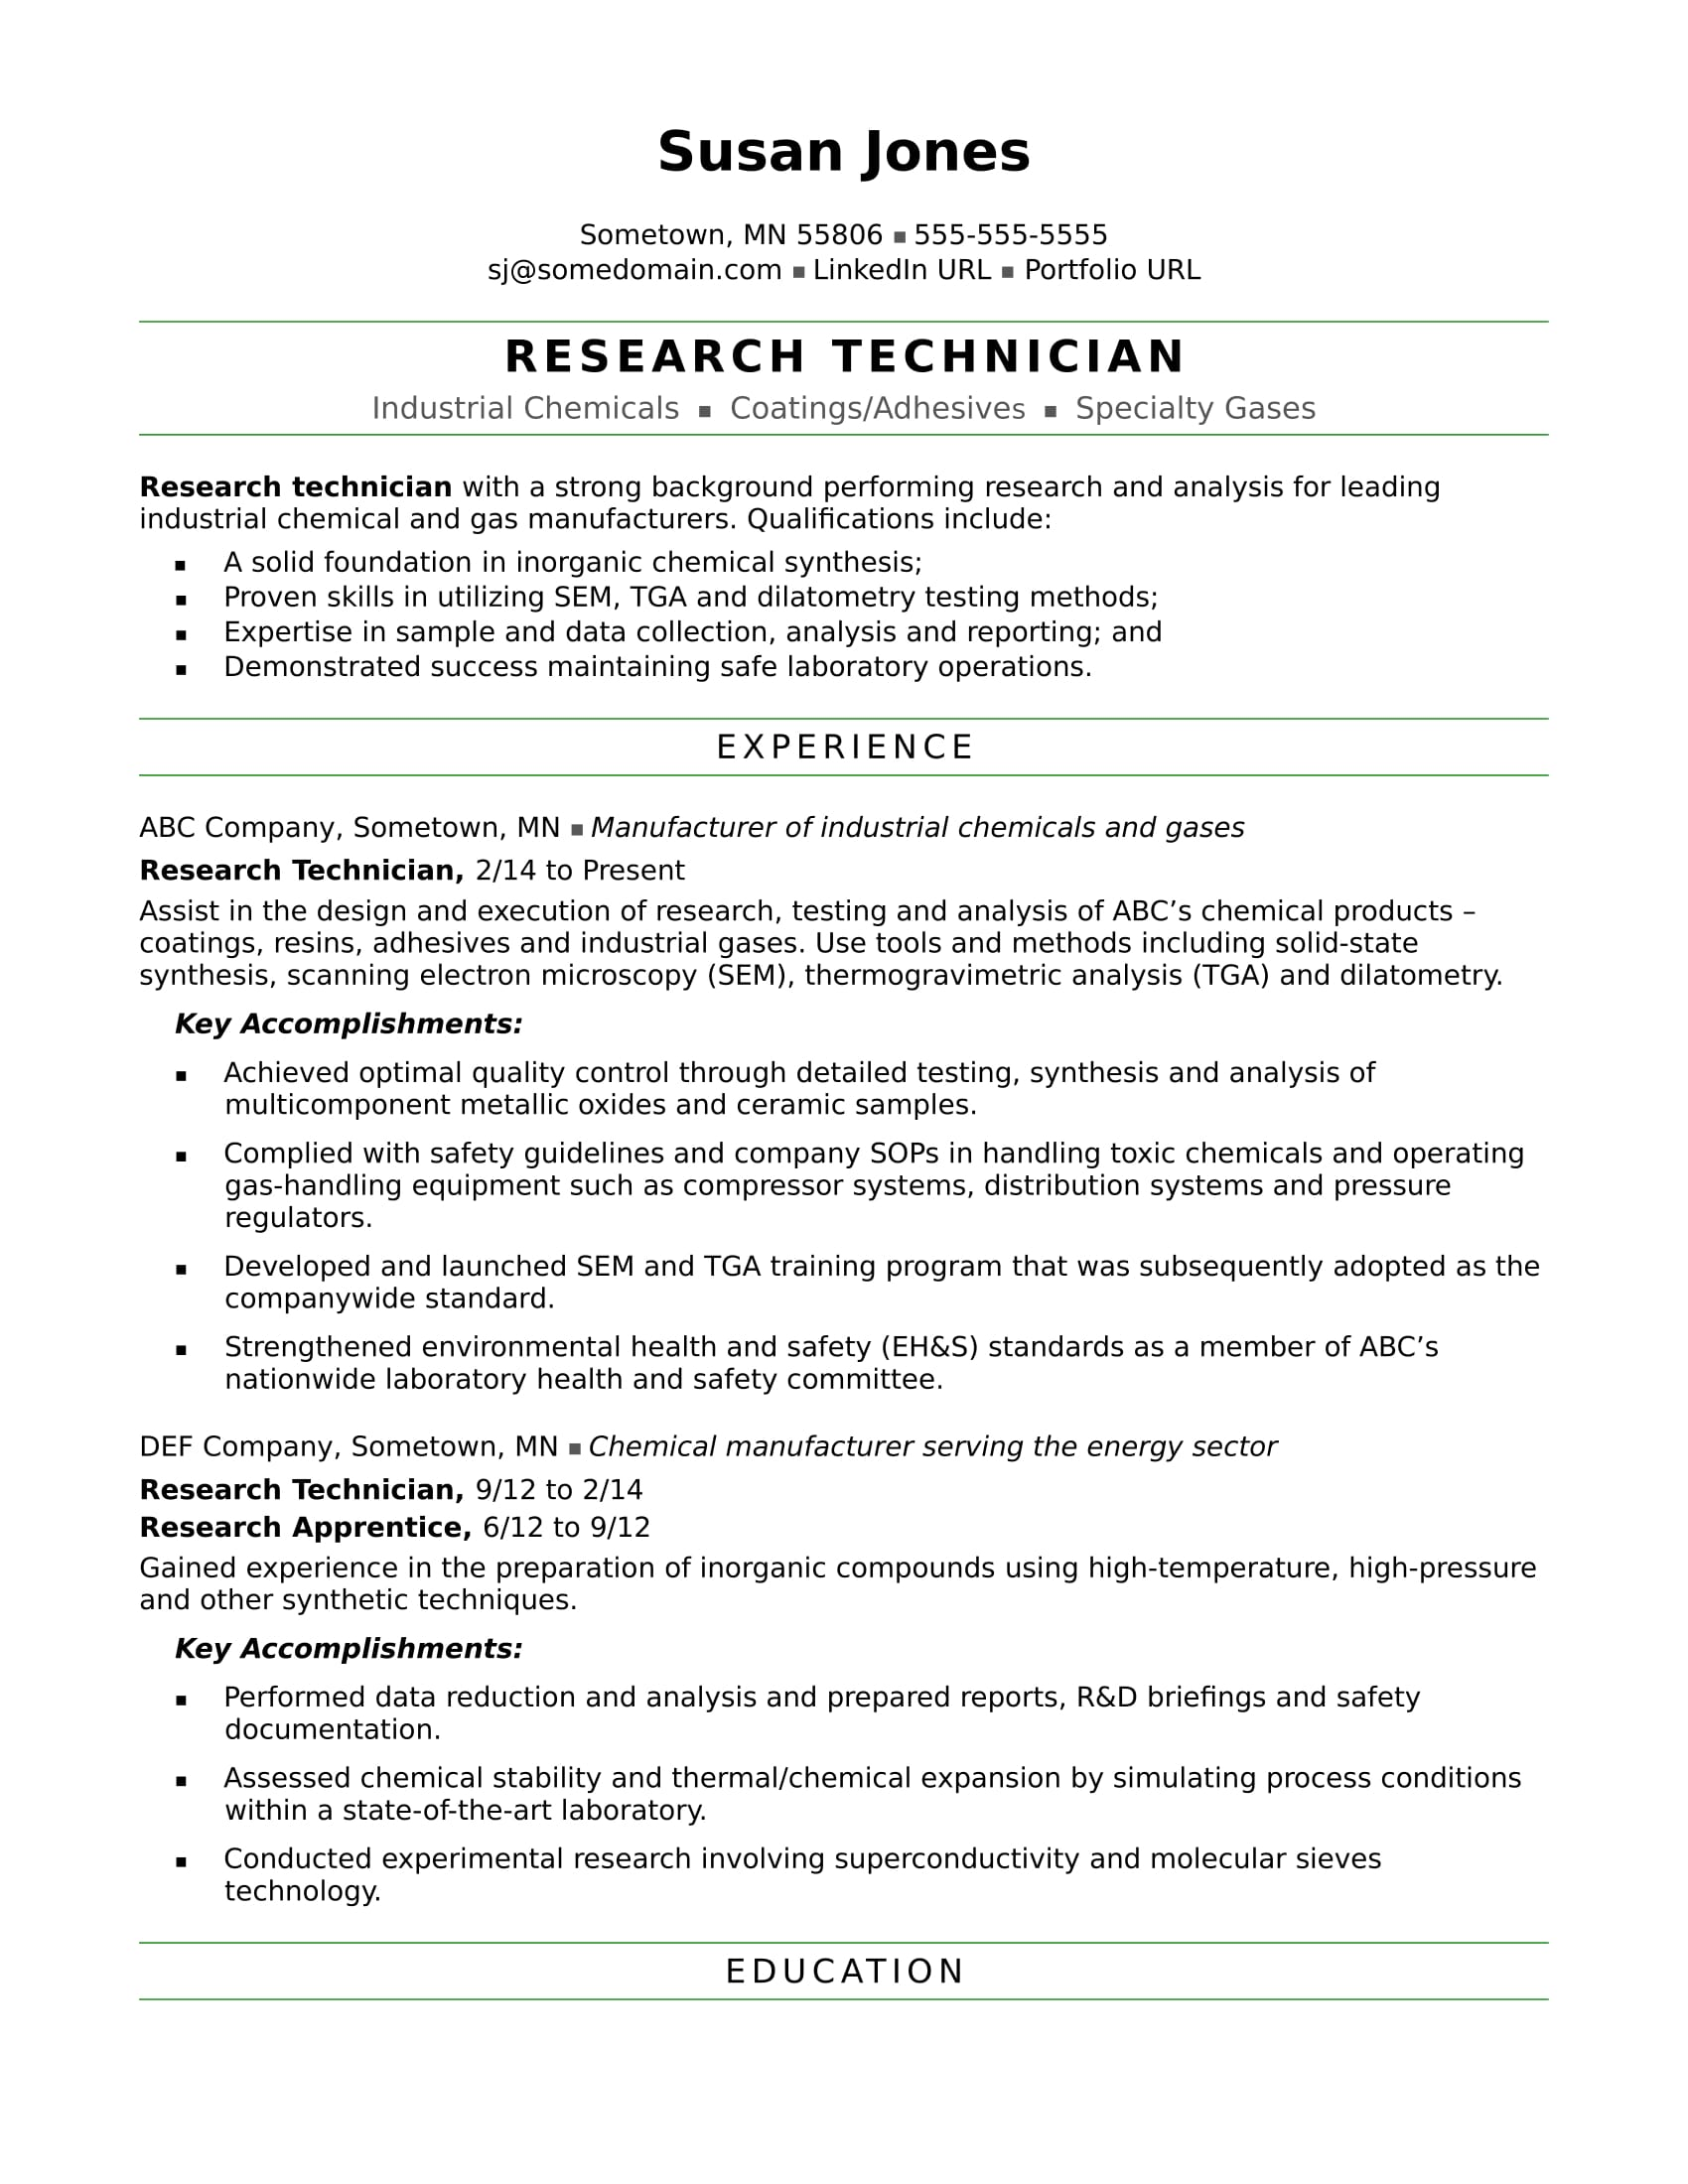 Research Technician Resume Sample Monster Com